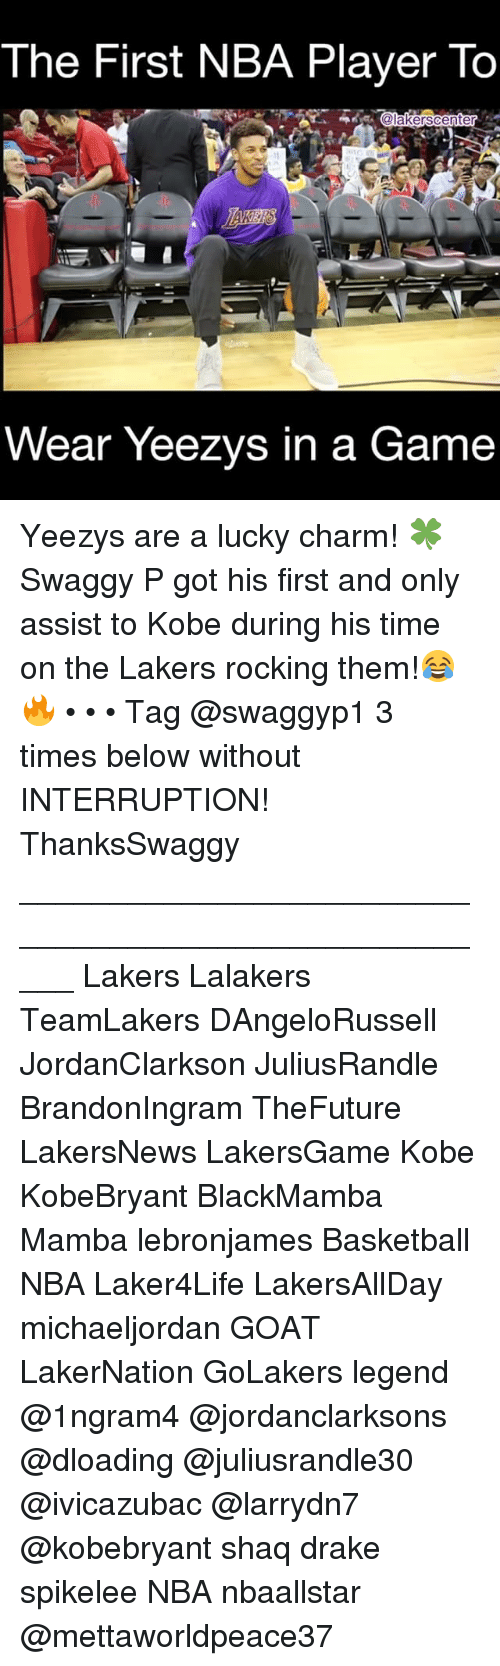 Interruption: The First NBA Player To  Wear Yeezvs in a Game Yeezys are a lucky charm! 🍀Swaggy P got his first and only assist to Kobe during his time on the Lakers rocking them!😂🔥 • • • Tag @swaggyp1 3 times below without INTERRUPTION! ThanksSwaggy _____________________________________________________ Lakers Lalakers TeamLakers DAngeloRussell JordanClarkson JuliusRandle BrandonIngram TheFuture LakersNews LakersGame Kobe KobeBryant BlackMamba Mamba lebronjames Basketball NBA Laker4Life LakersAllDay michaeljordan GOAT LakerNation GoLakers legend @1ngram4 @jordanclarksons @dloading @juliusrandle30 @ivicazubac @larrydn7 @kobebryant shaq drake spikelee NBA nbaallstar @mettaworldpeace37